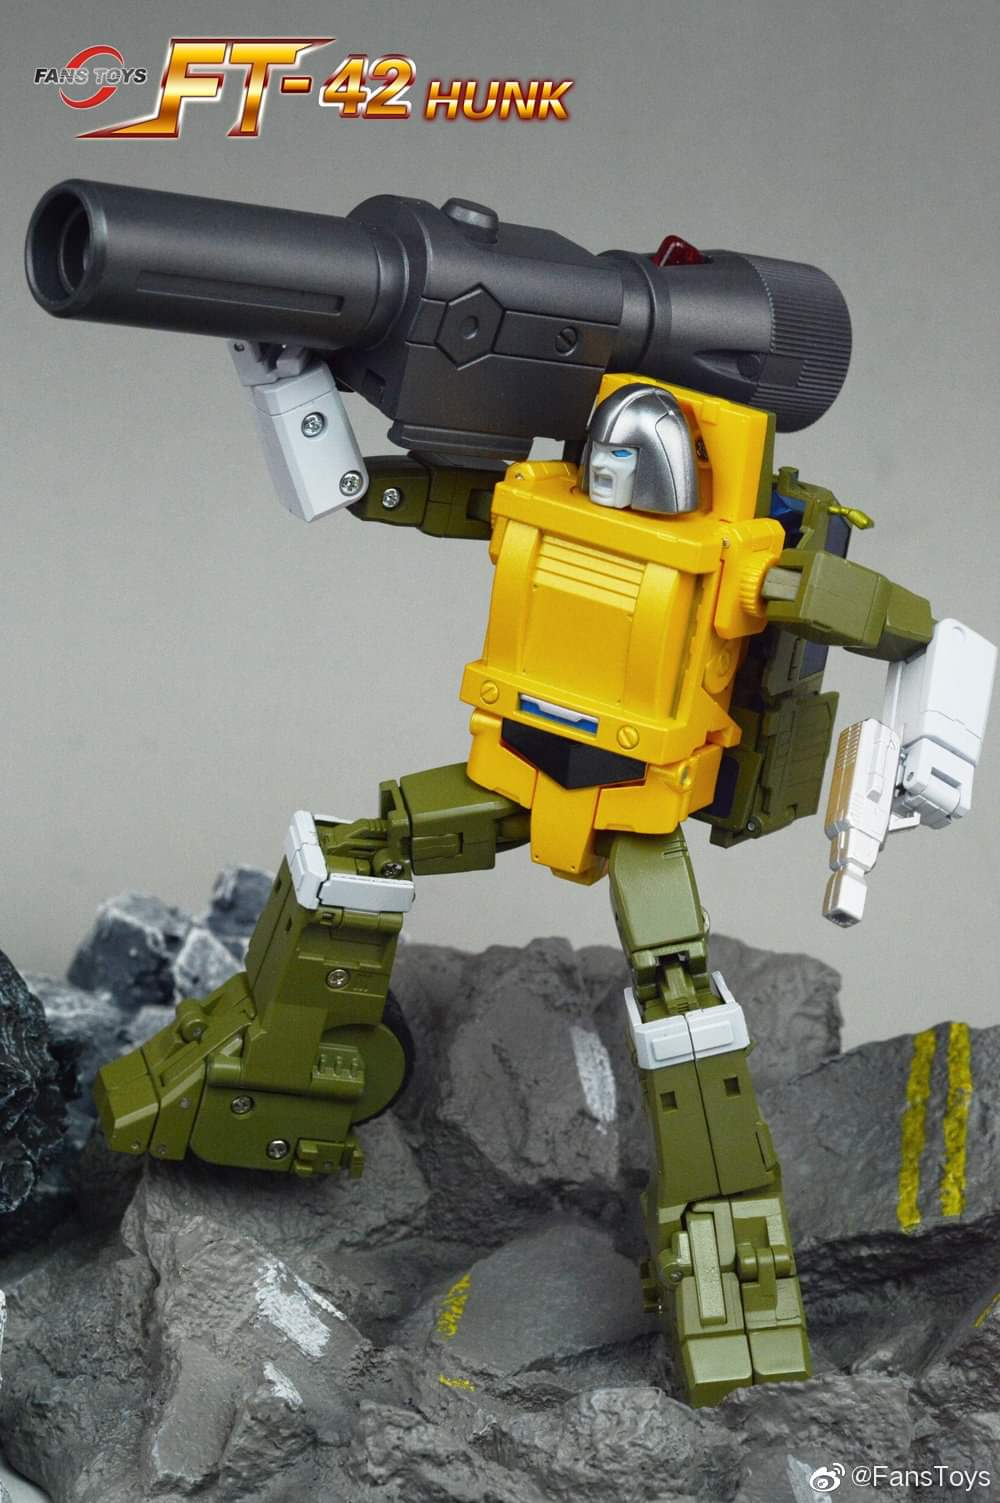 [Fanstoys] Produit Tiers - Minibots MP - Gamme FT - Page 3 YetUAd6v_o